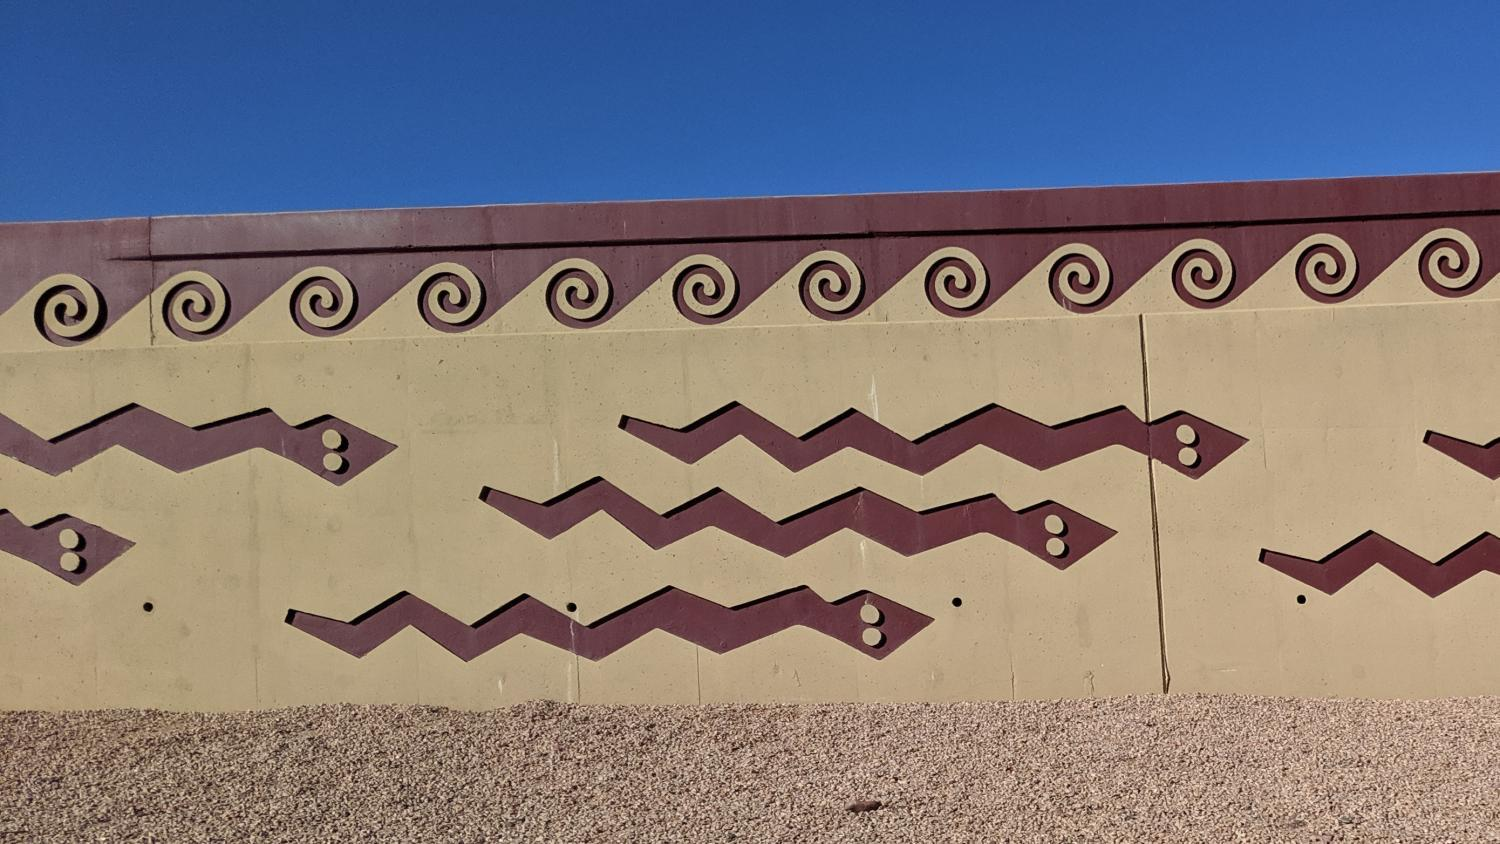 Art on State Route 143 wall.